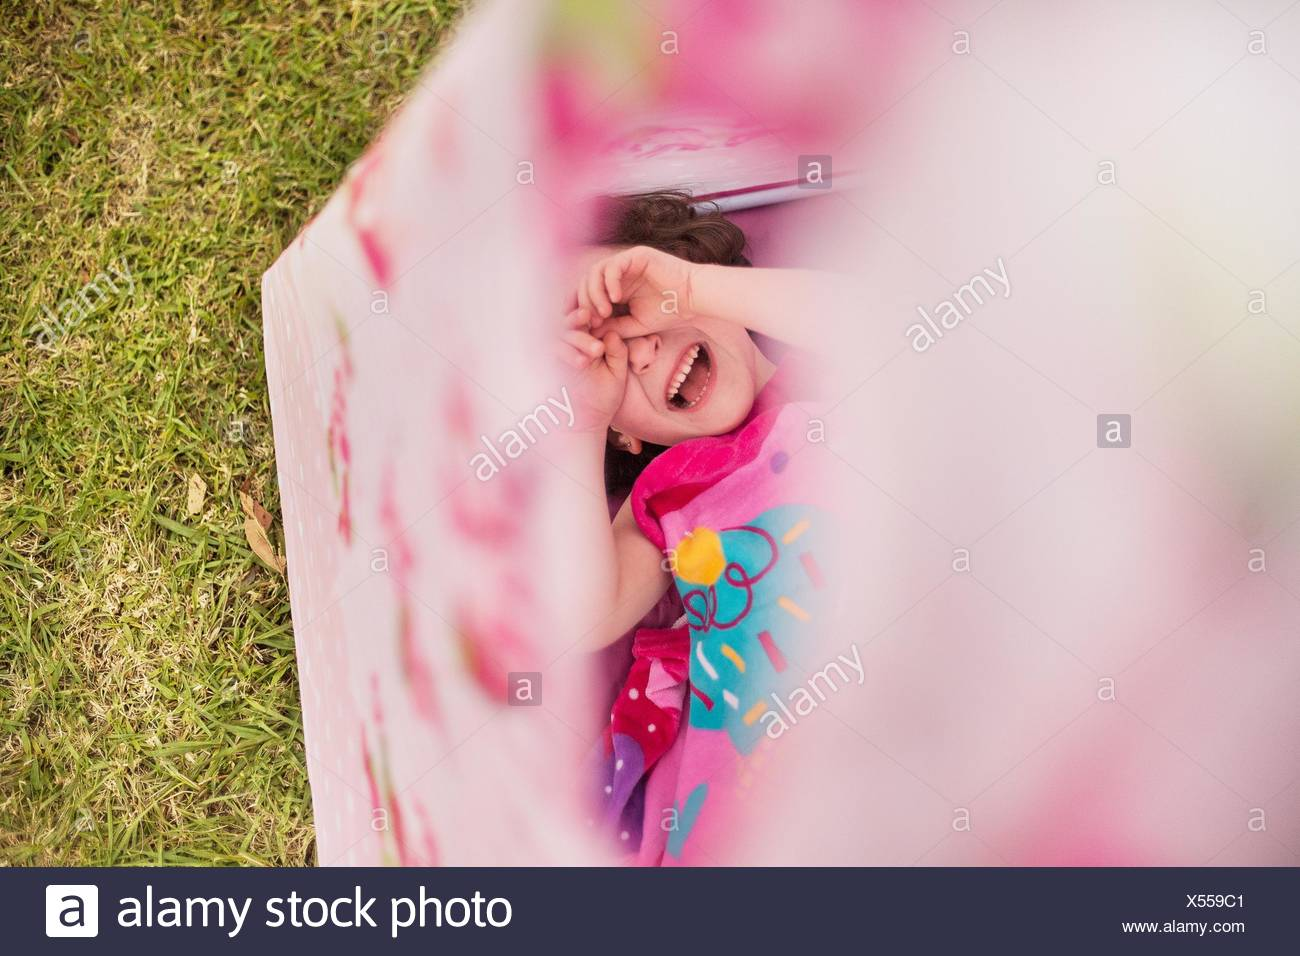 Overhead view of girl in teepee, hands covering eyes smiling - Stock Image